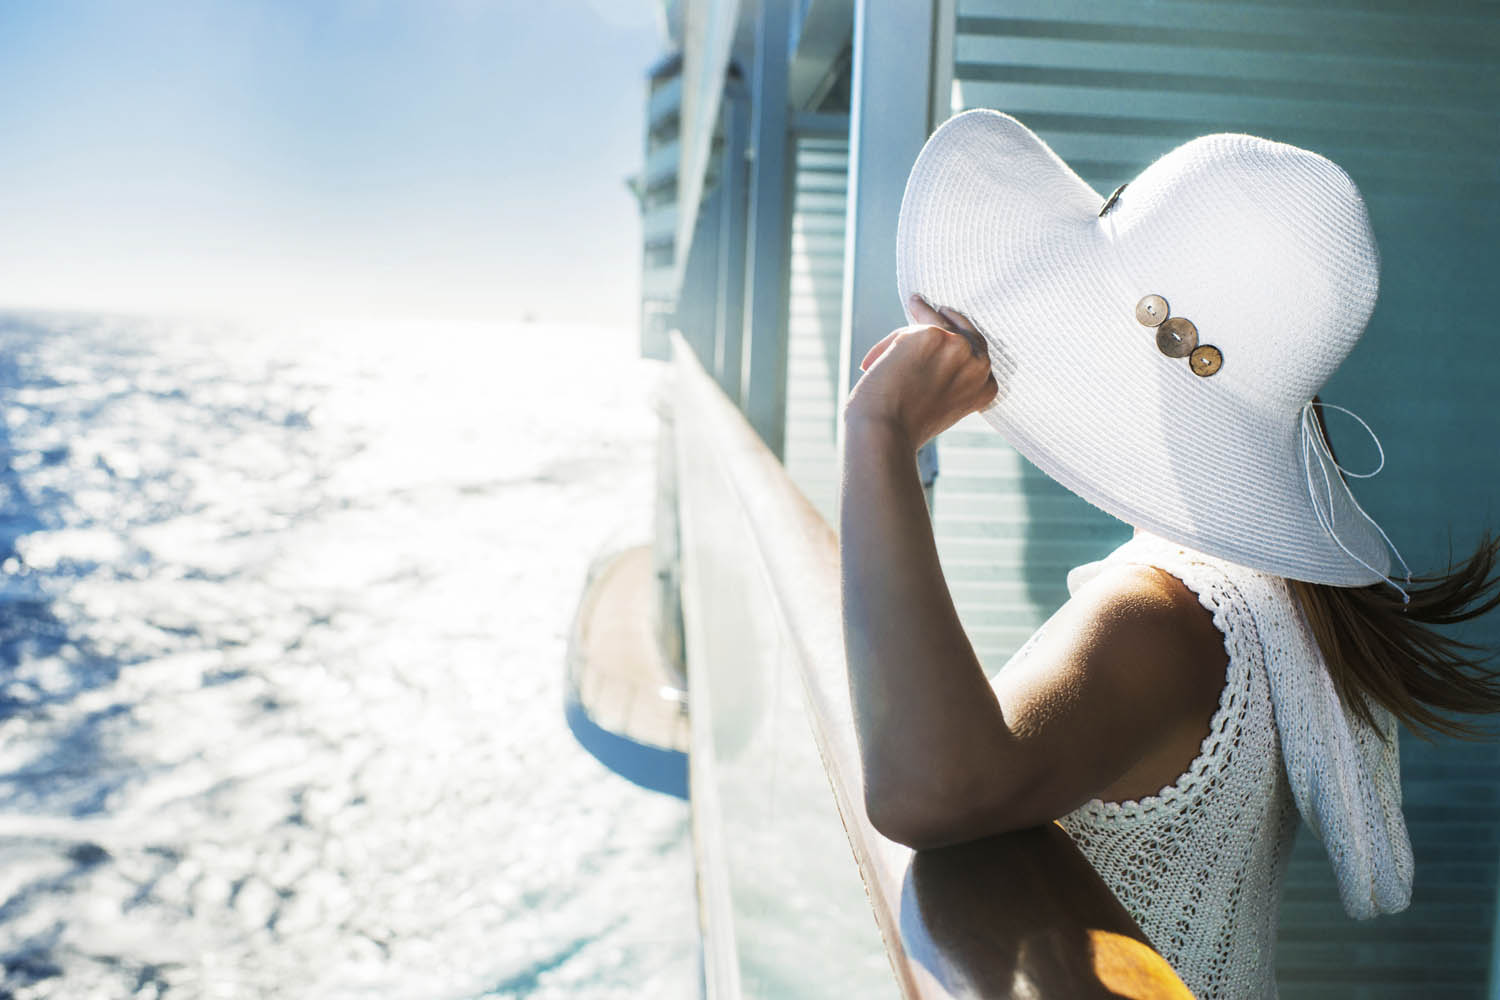 Cruise lines are courting agents again. Will the romance last?